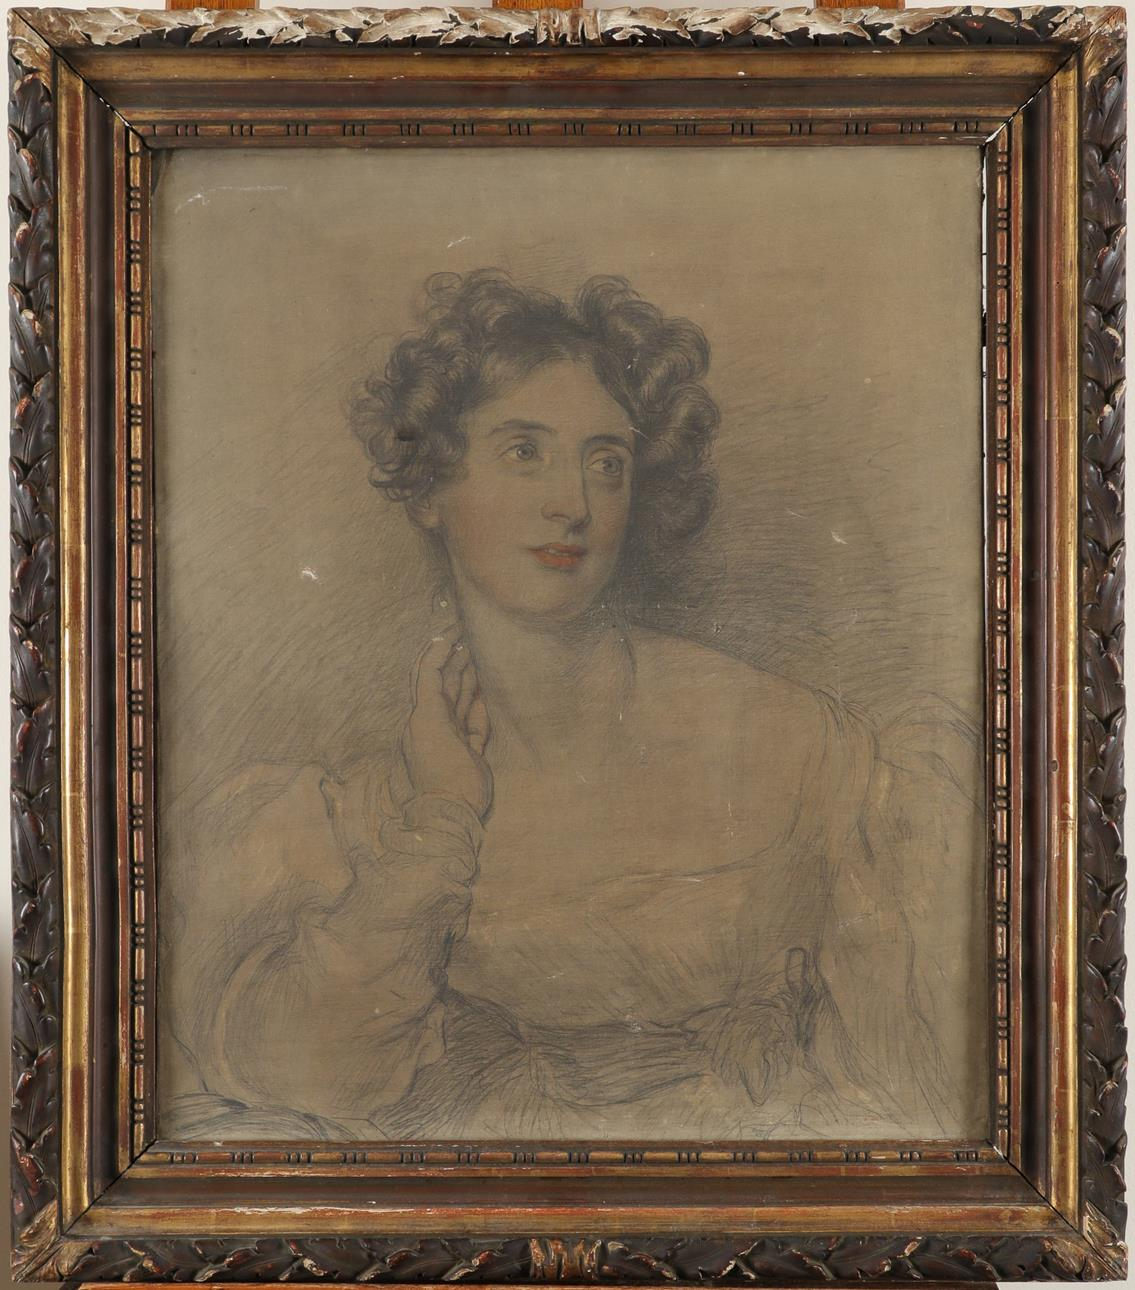 Lot 464 - Circle of Sir Thomas Lawrence Portrait of a young lady, half-length Pencil and wash on canvas 61.2 x